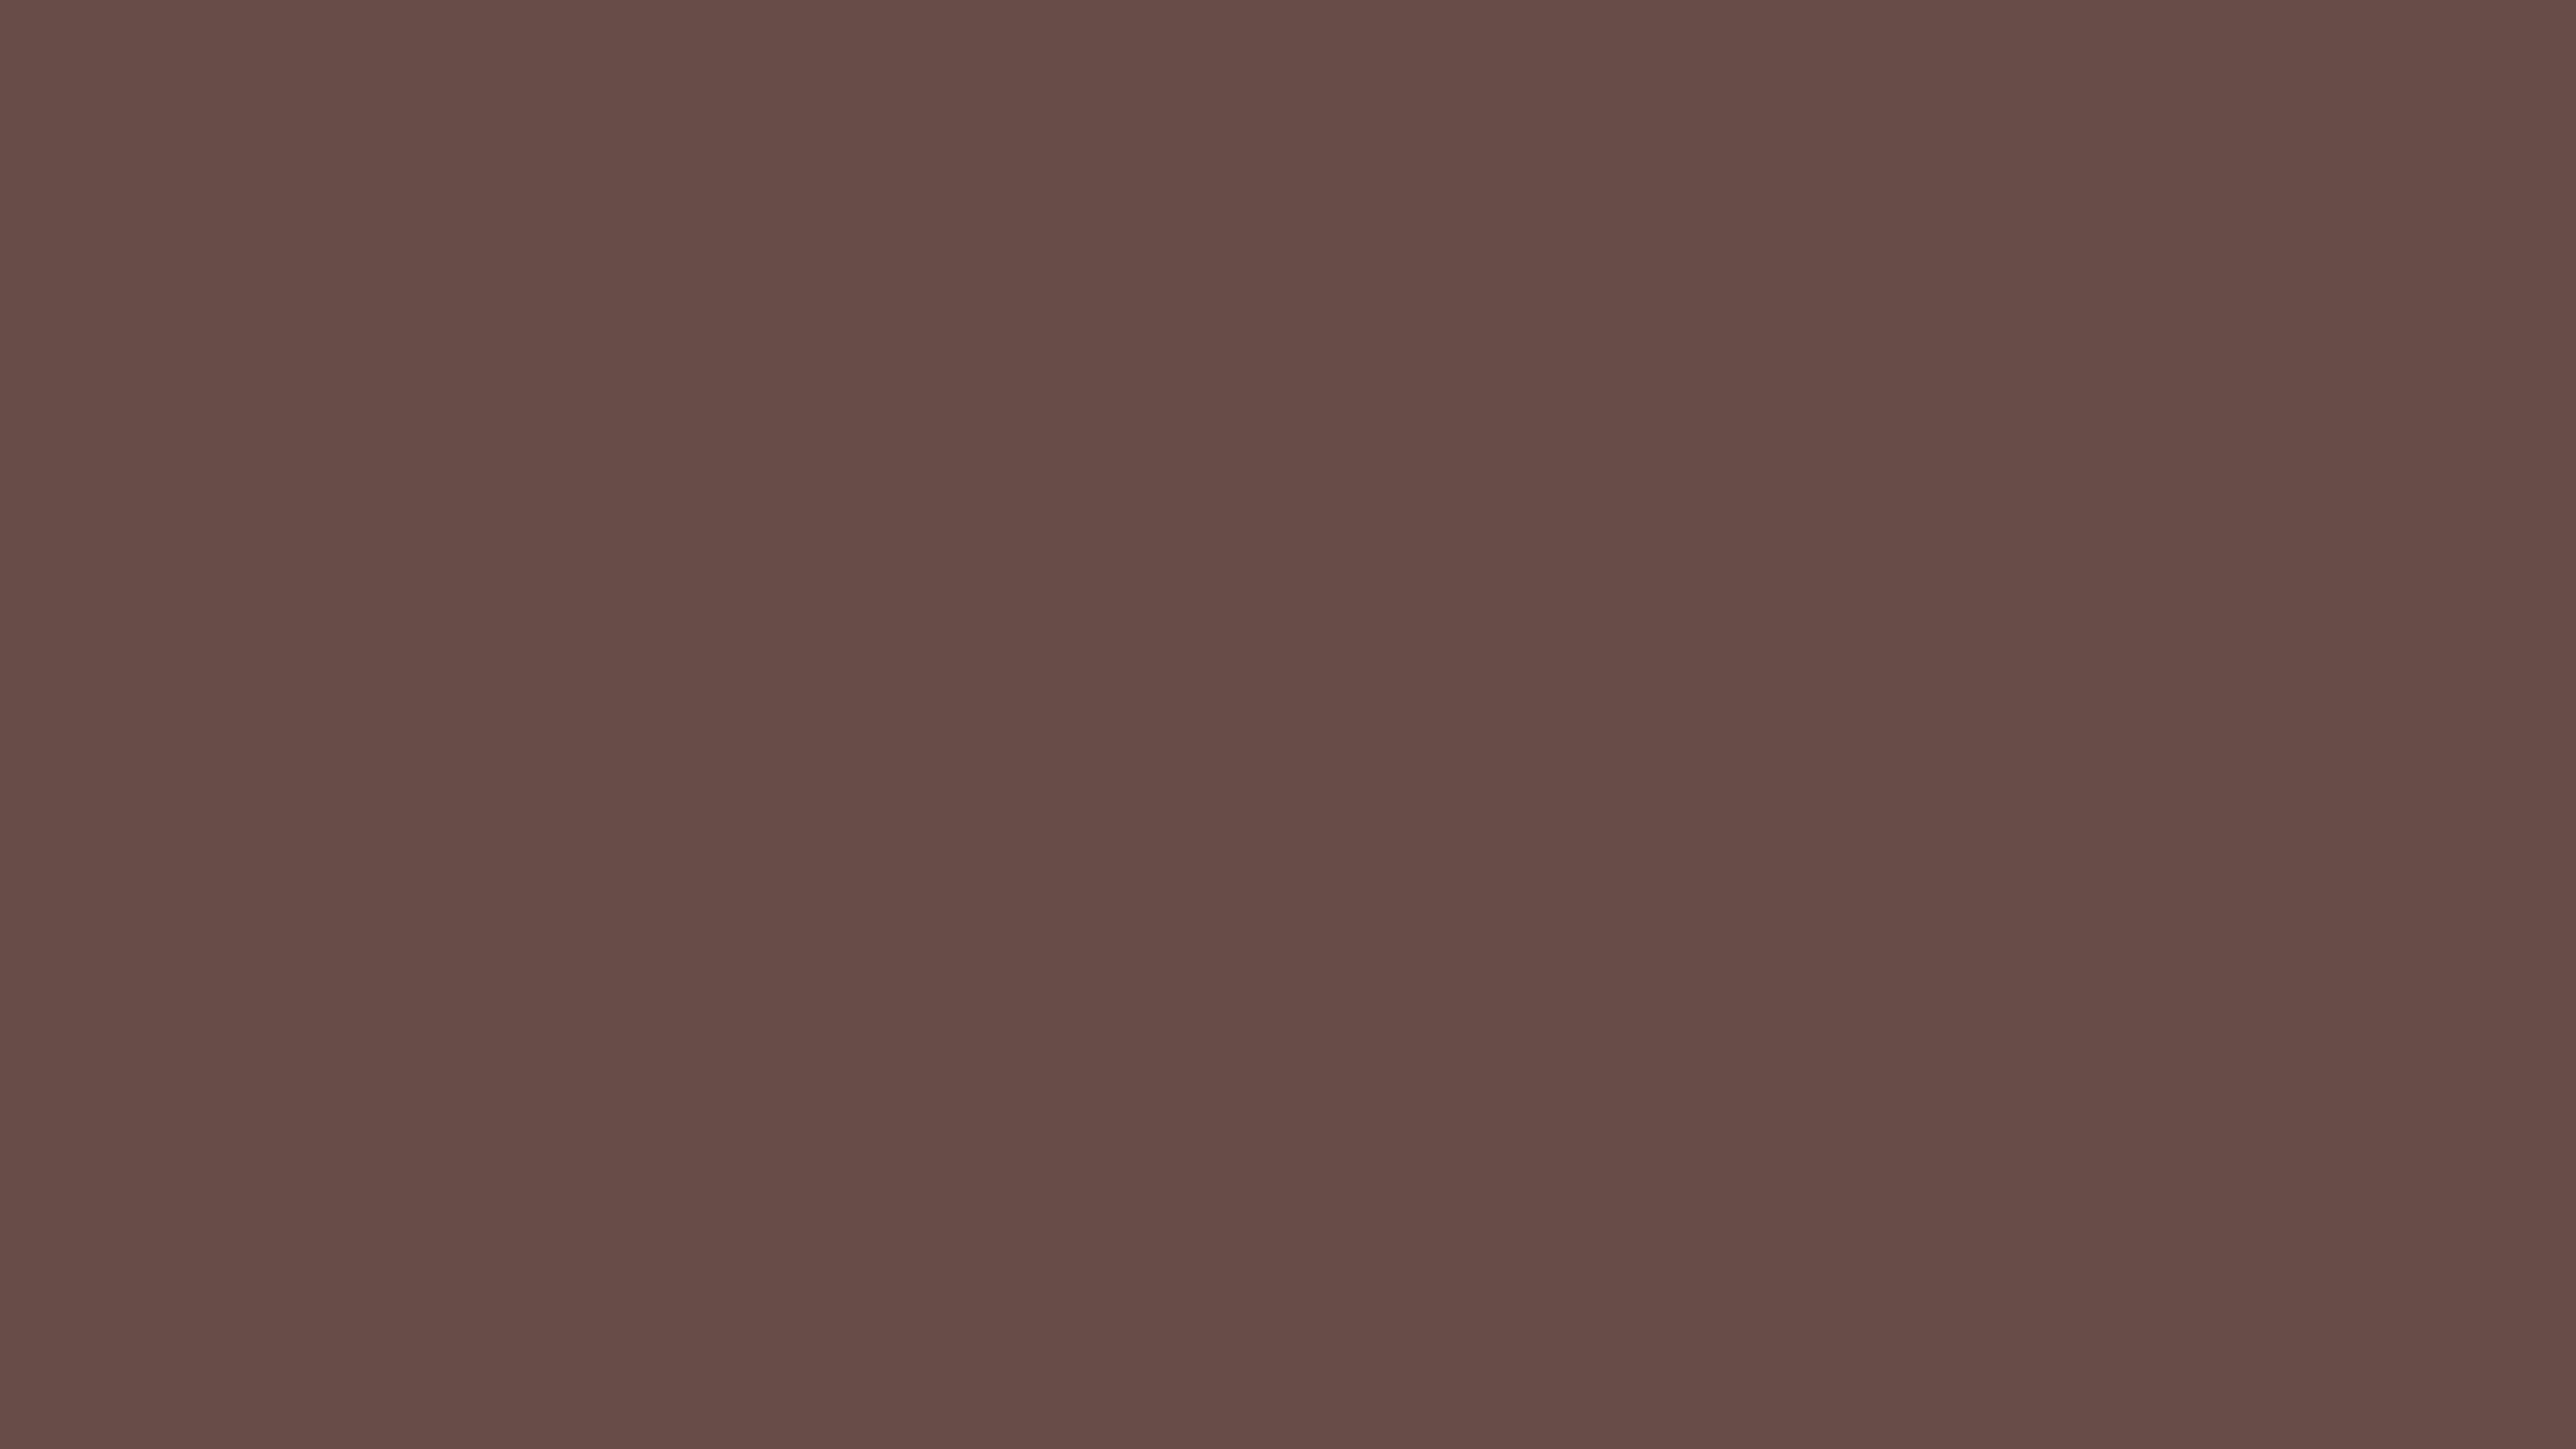 4096x2304 Medium Taupe Solid Color Background